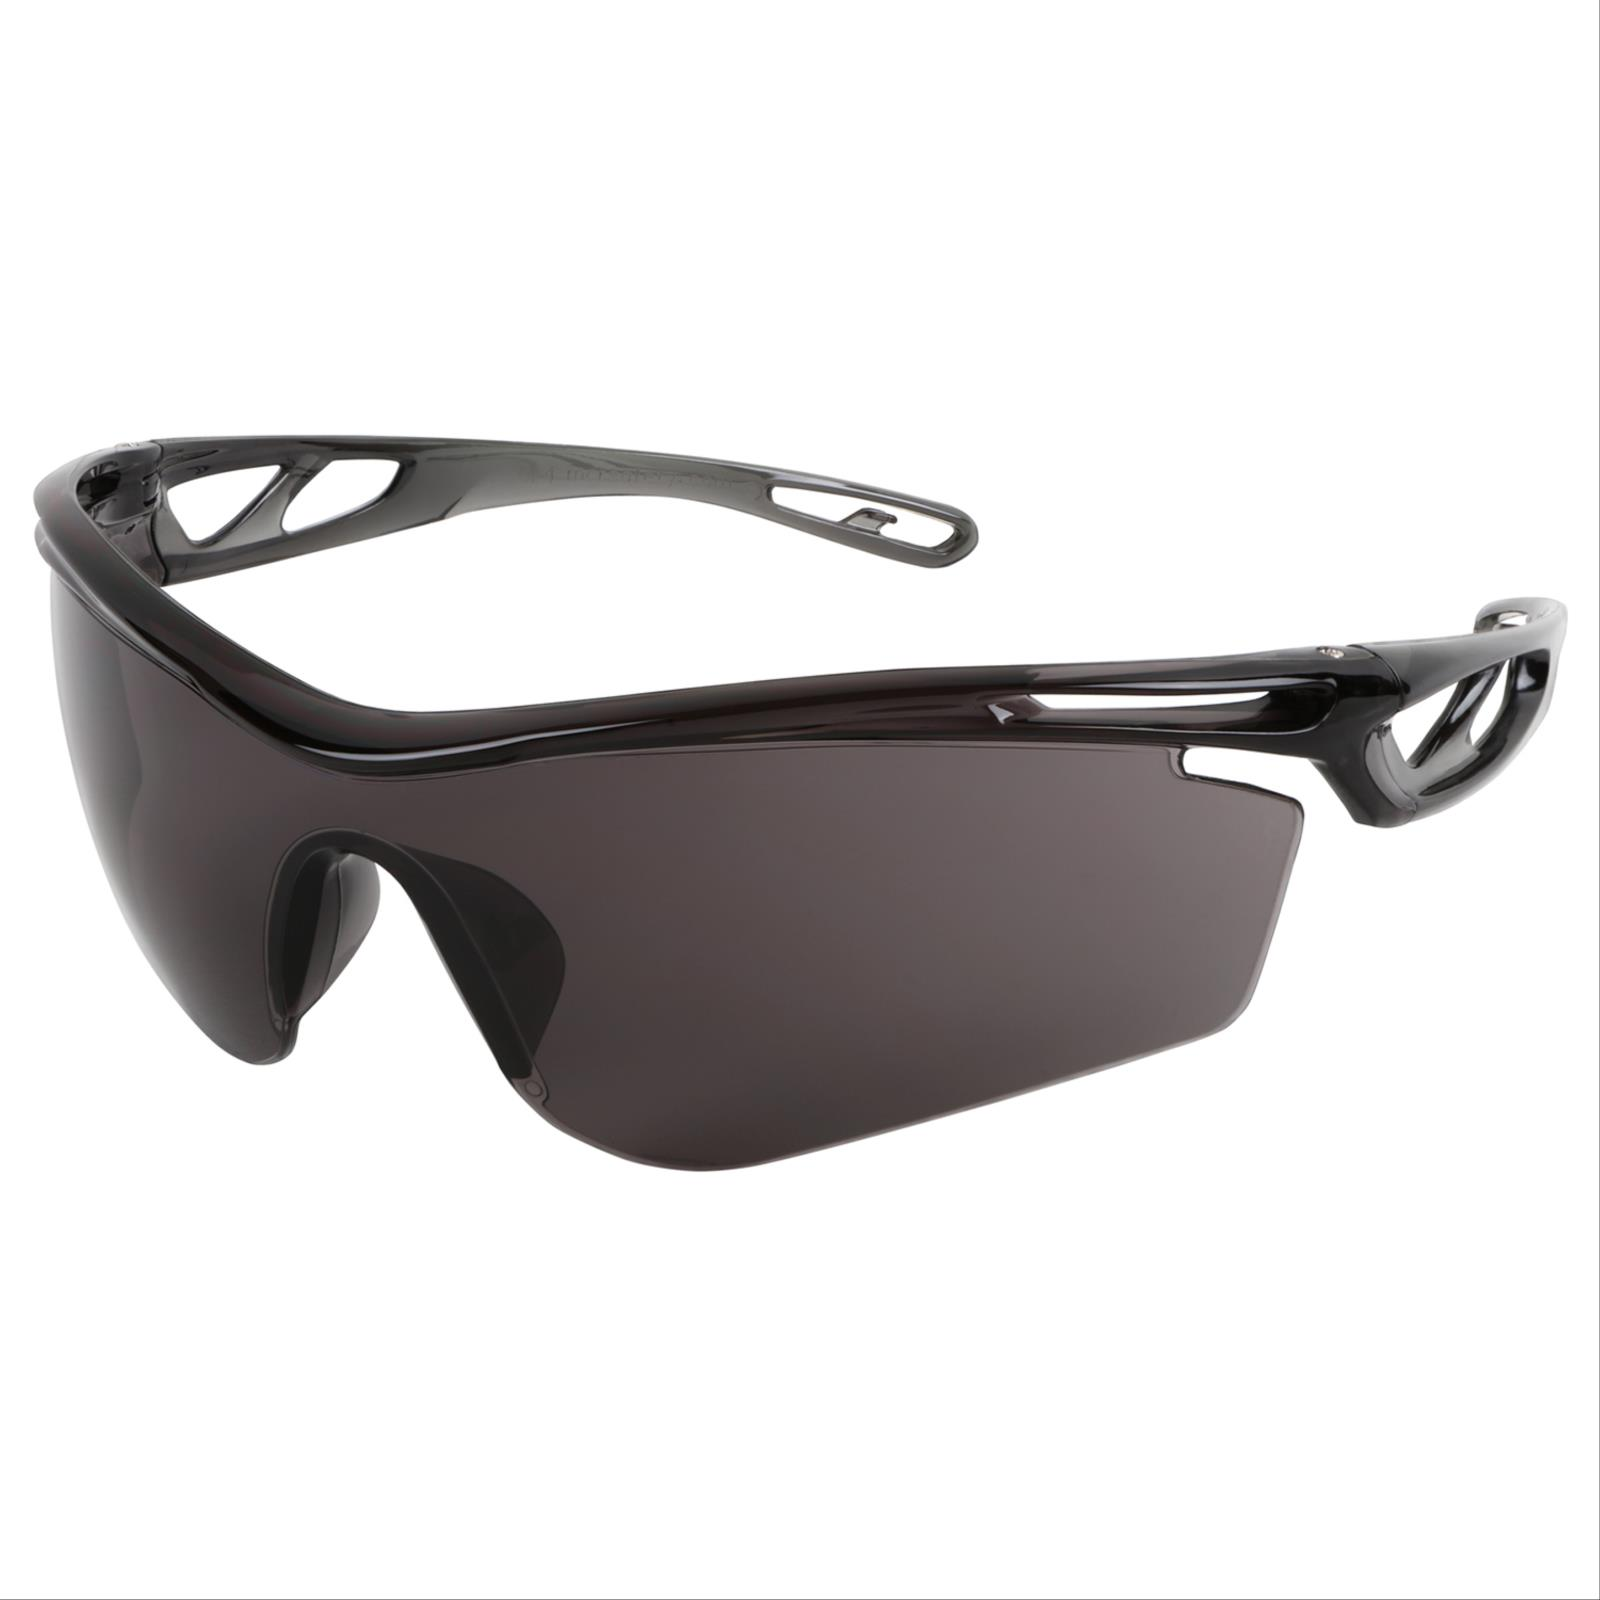 Checklite® CL4 Series Safety Glasses